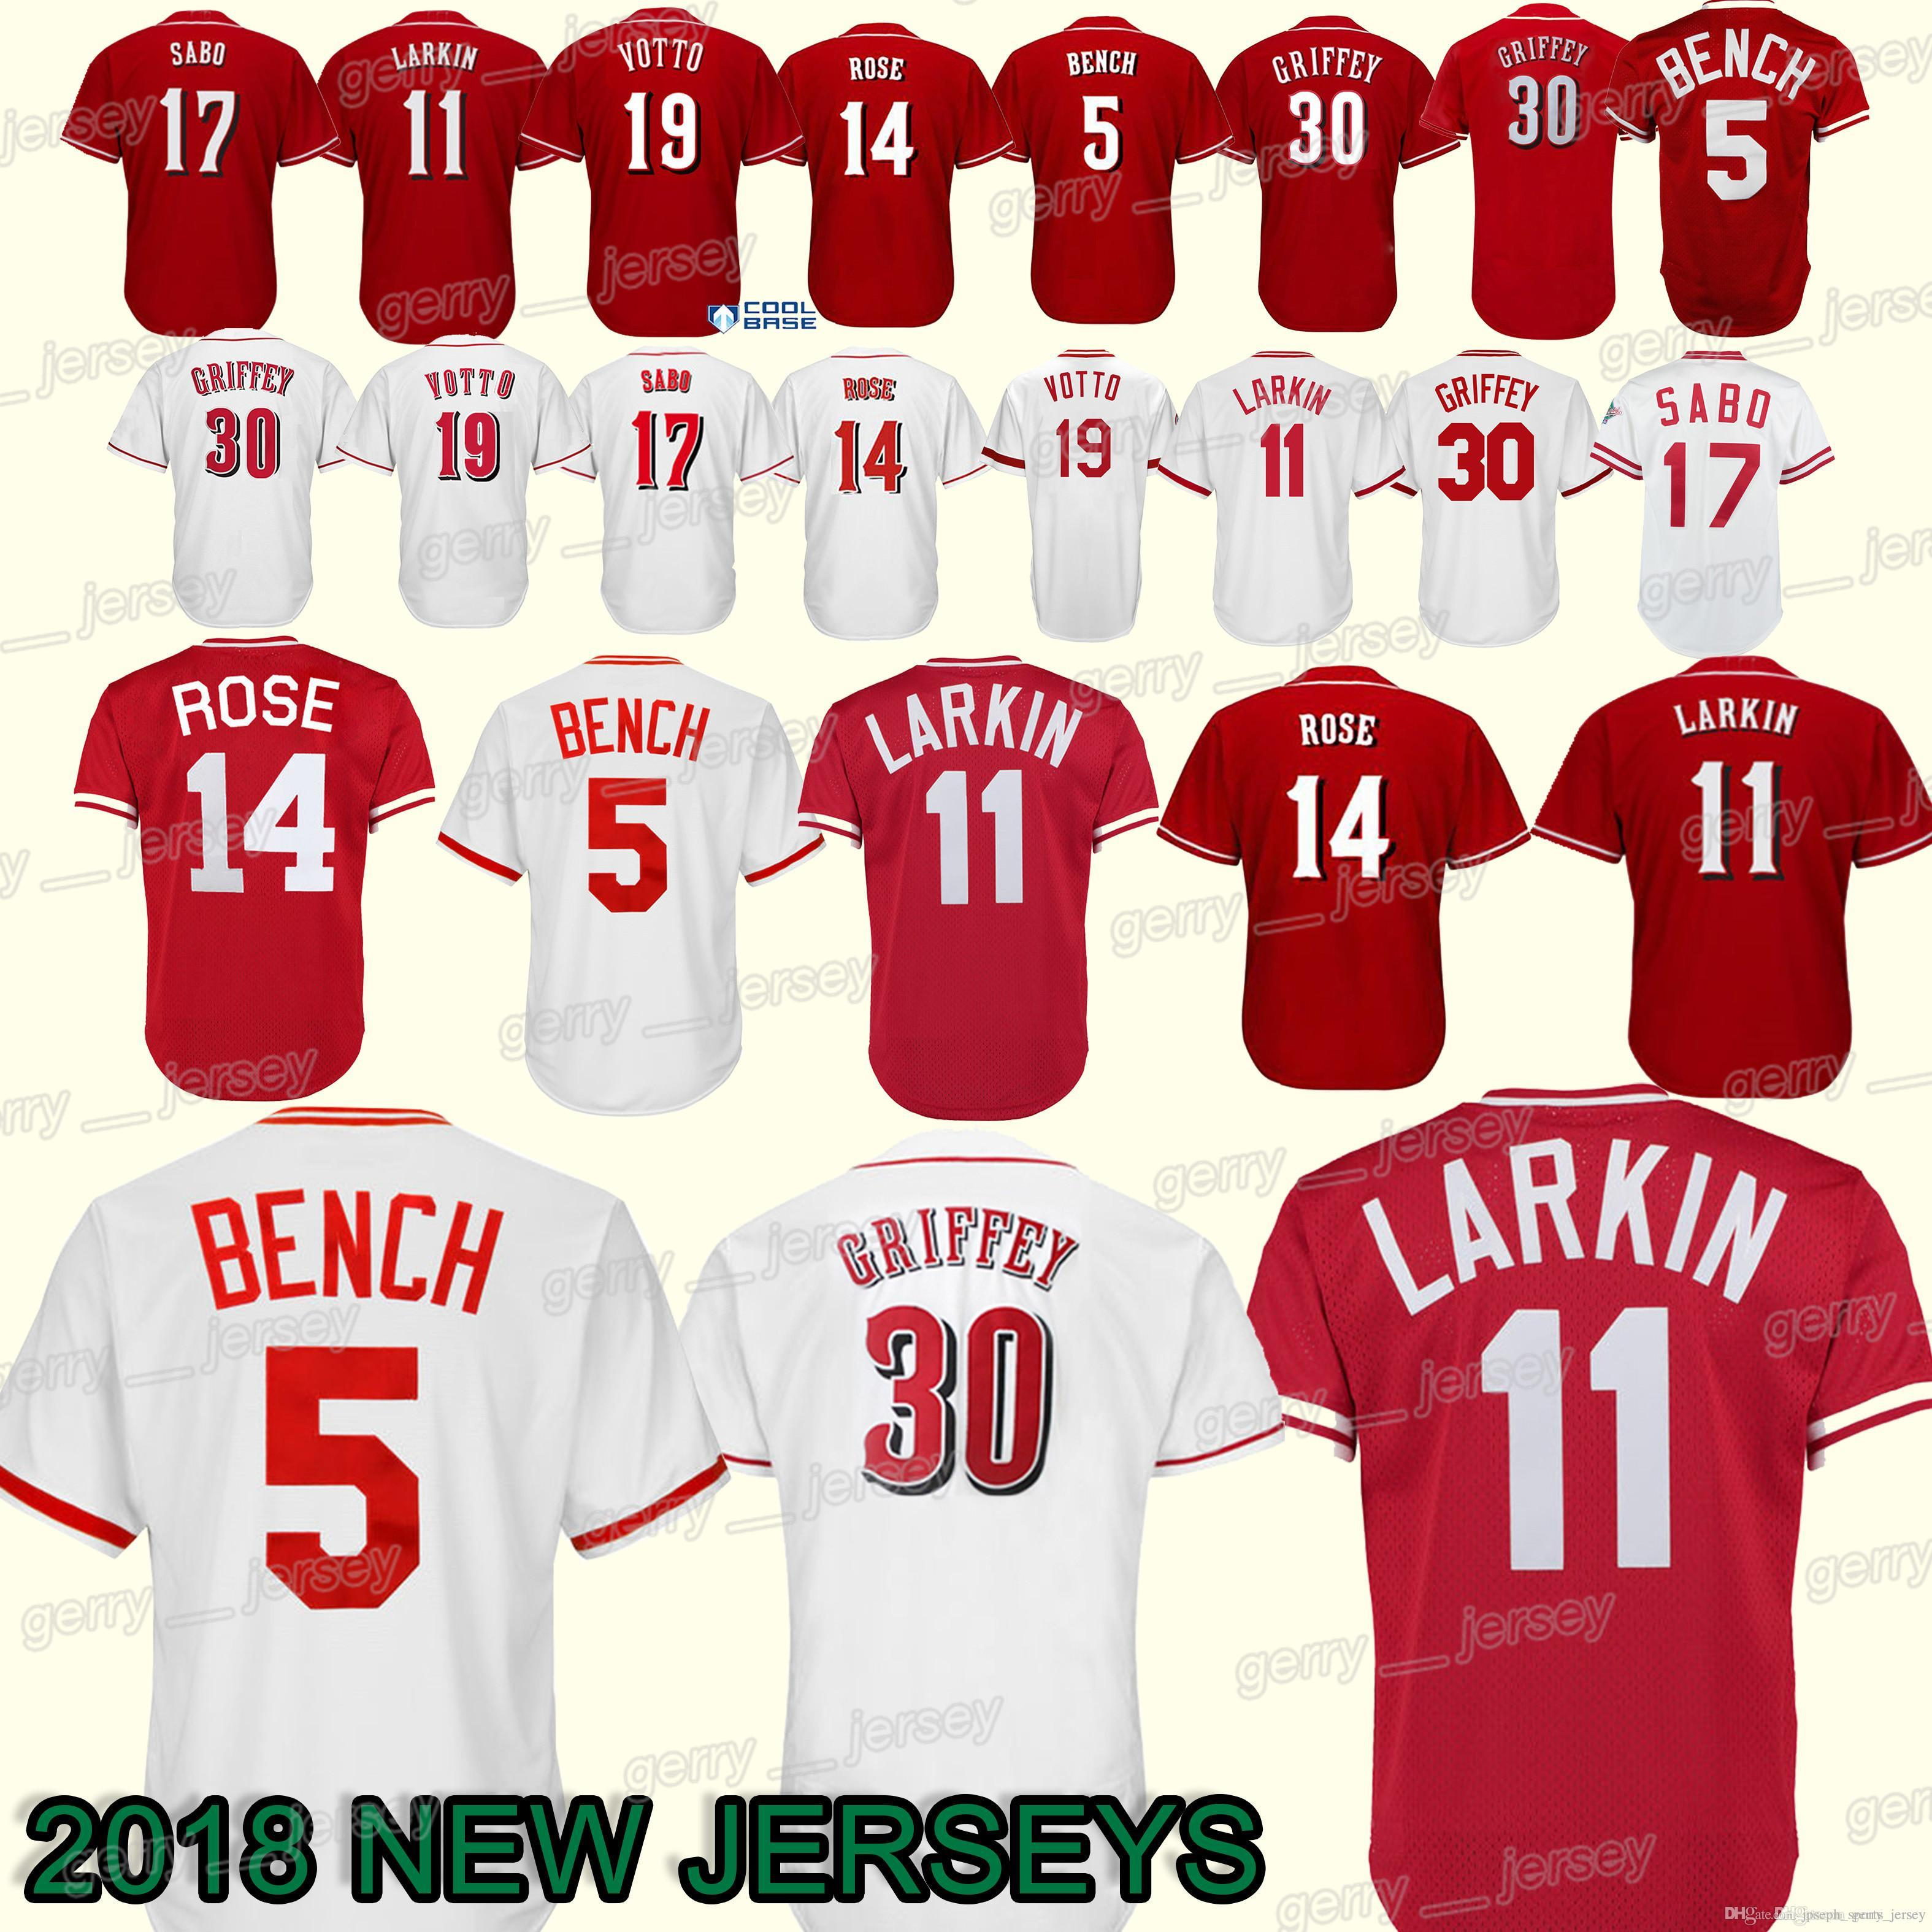 buy online 85071 02fba wholesale cincinnati reds barry larkin jersey 095f6 c0840